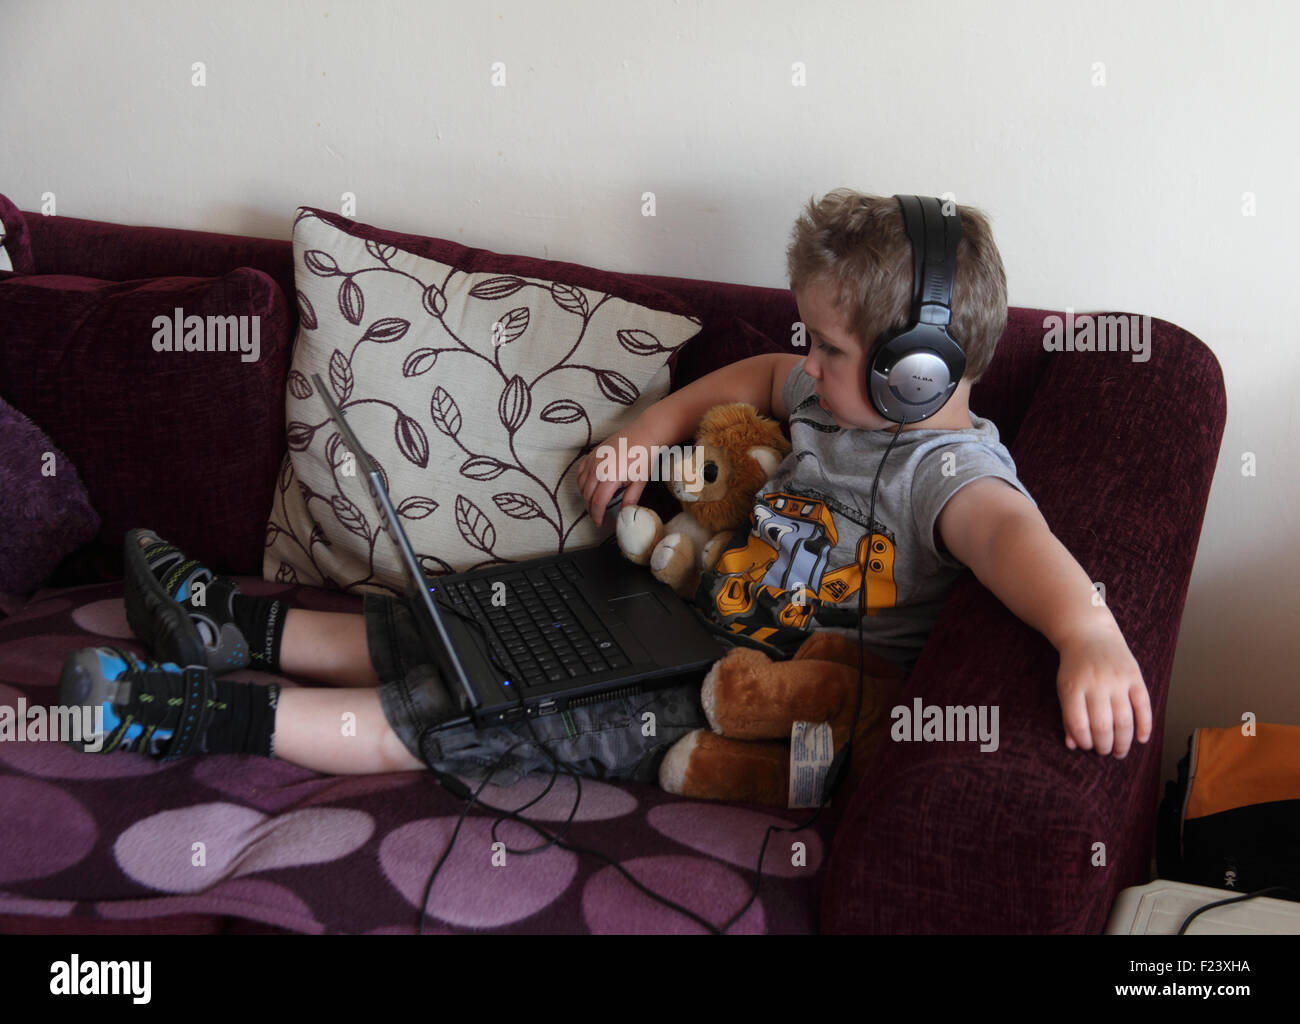 Small boy using laptop computer and headphones - Stock Image